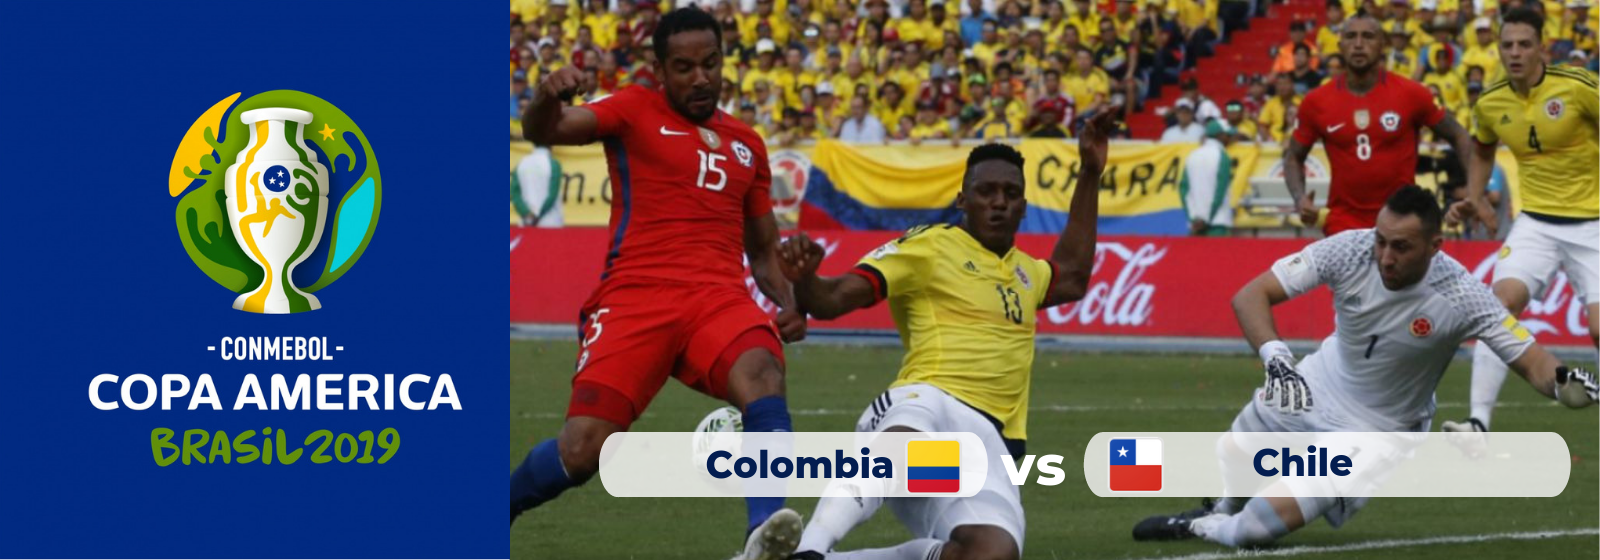 Copa America Colombia Vs. Chile Asian Connect